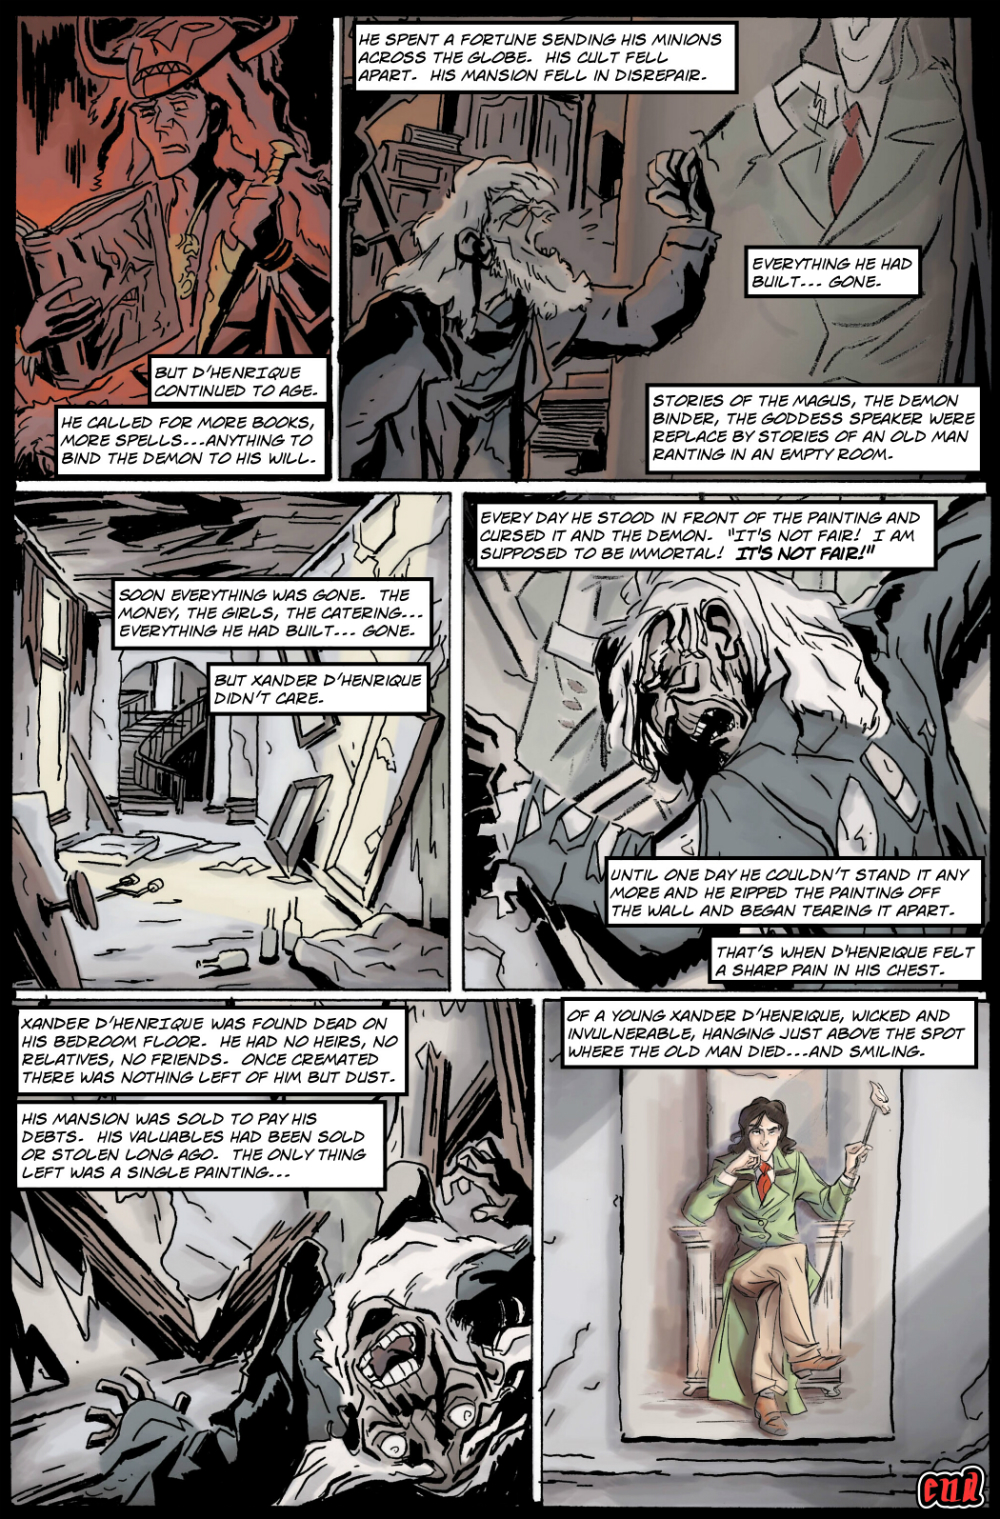 MOST EVIL PAINTING IN THE WORLD page 6 - story 17 in The Book of Lies